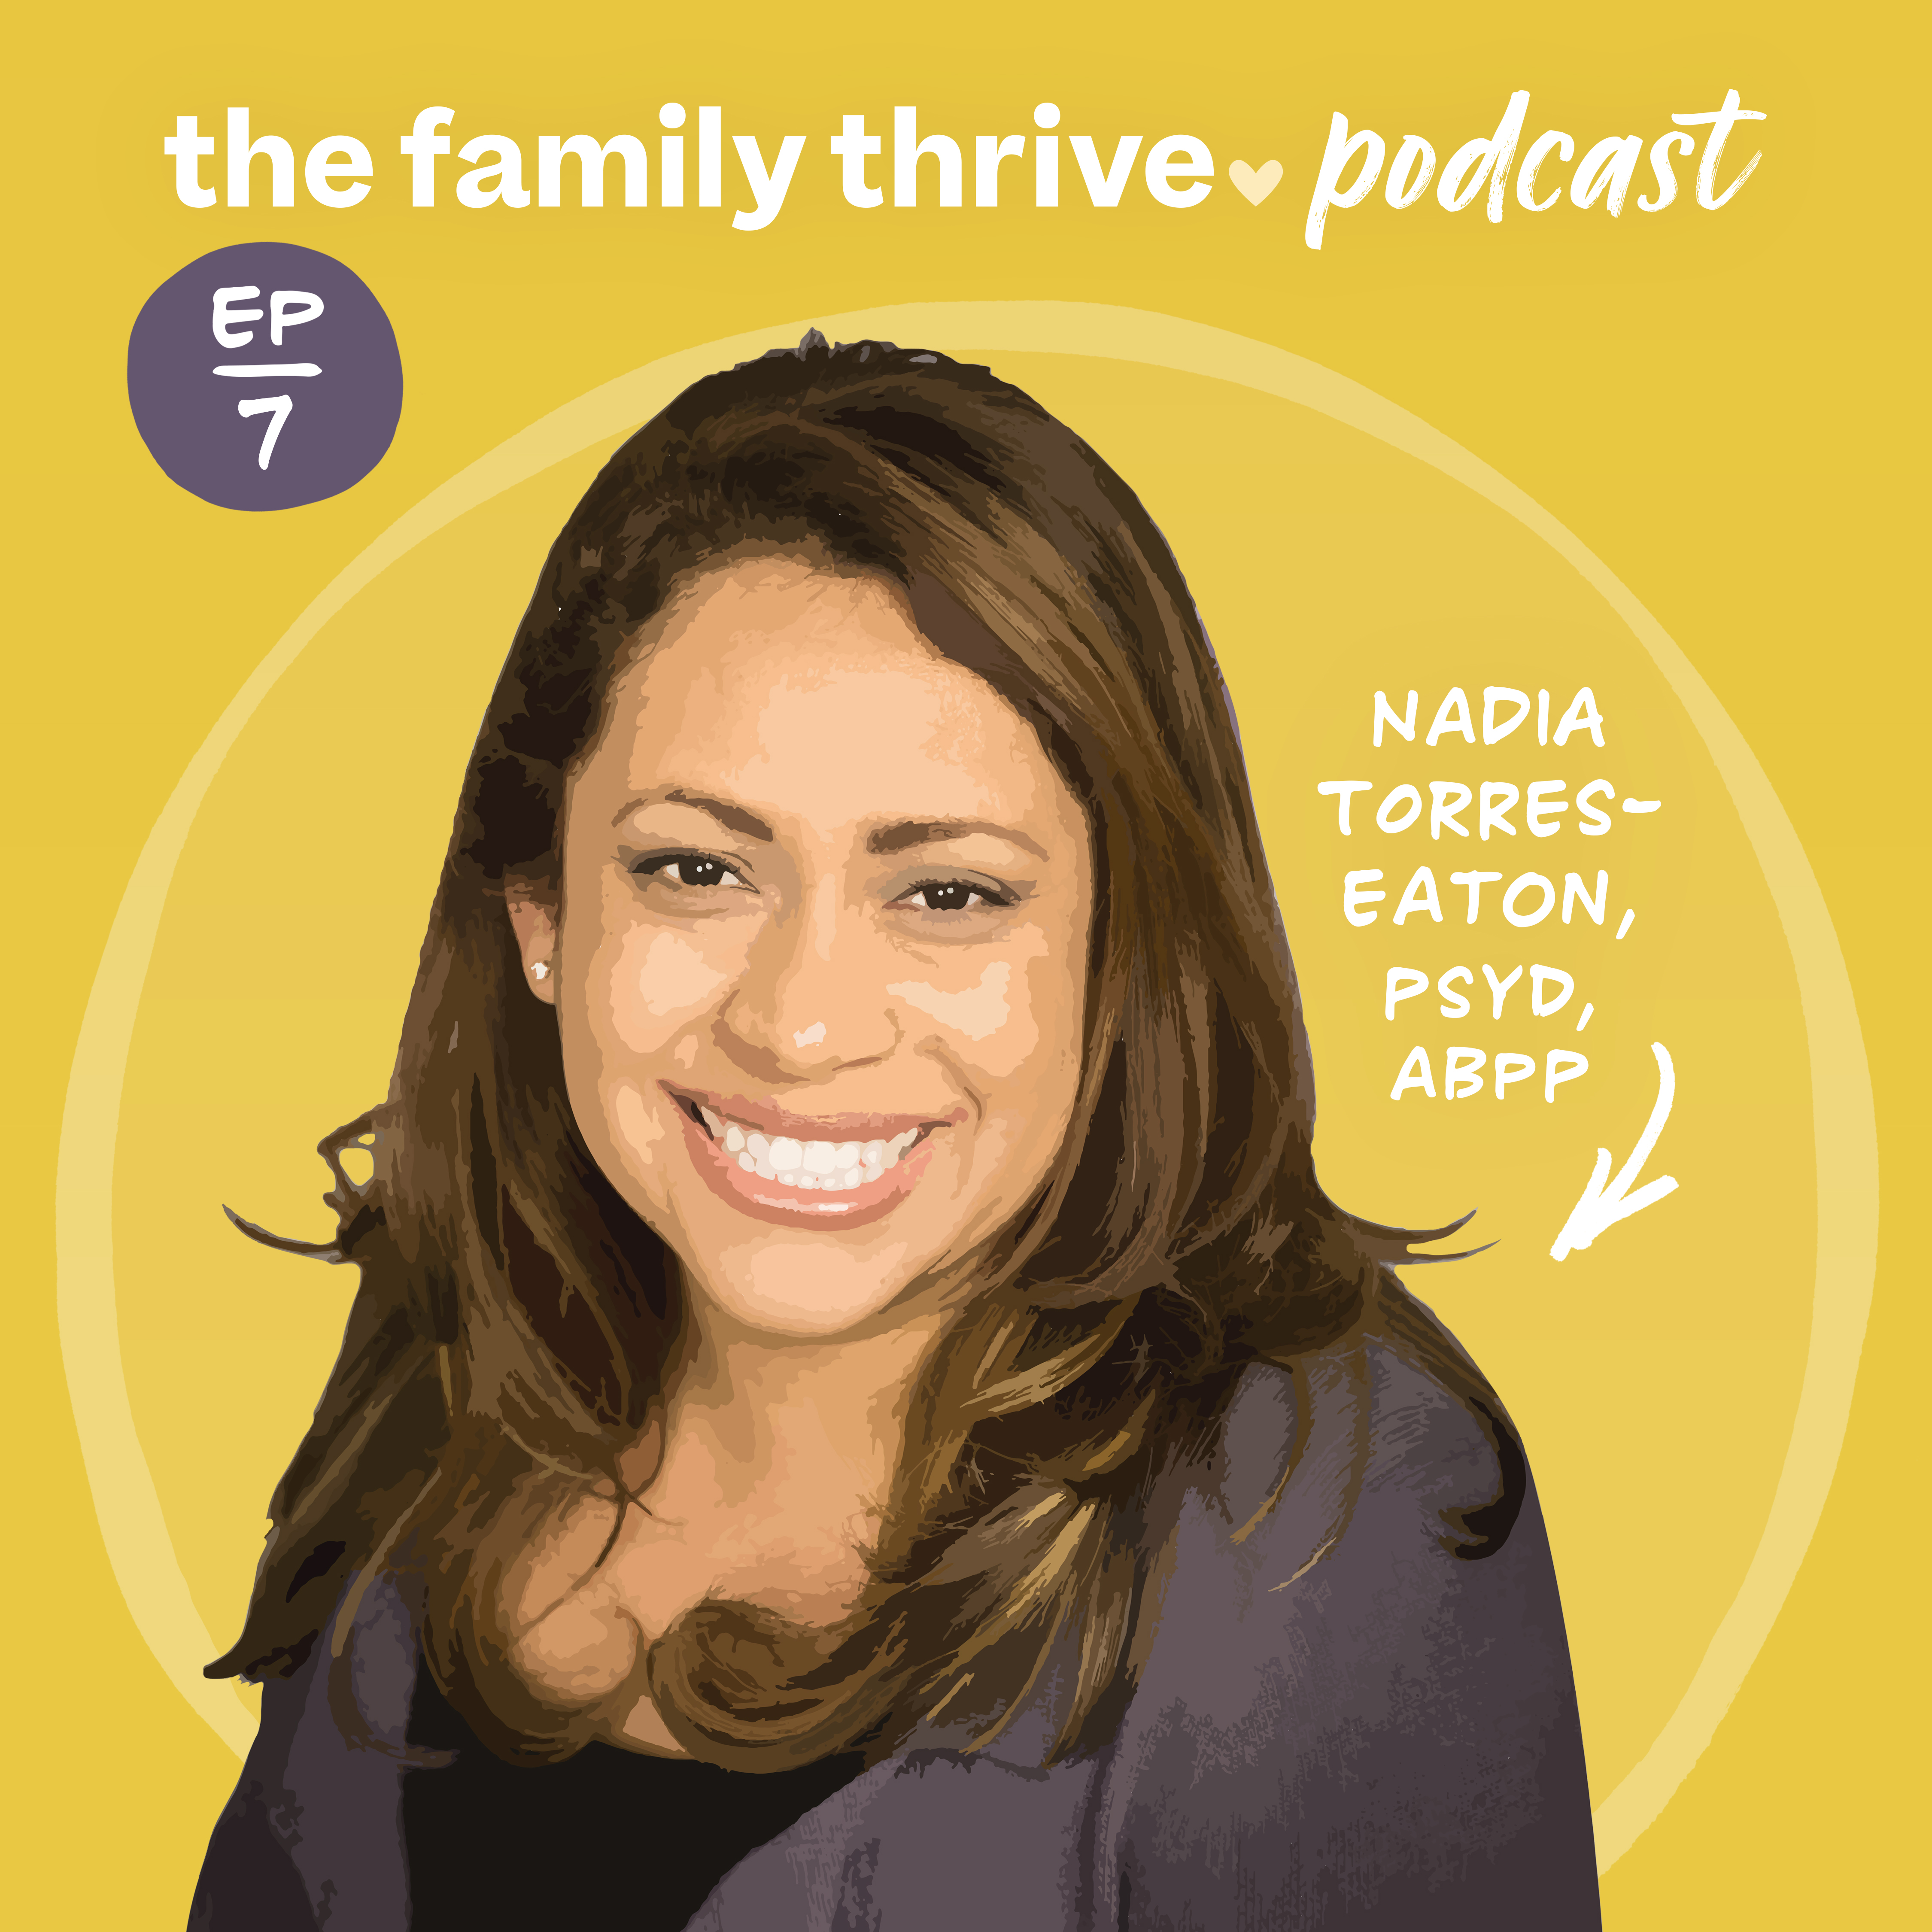 Podcast Ep. 7: Growing up between cultures, healing trauma, and cultivating self-compassion with Nadia Torres-Eaton, PsyD